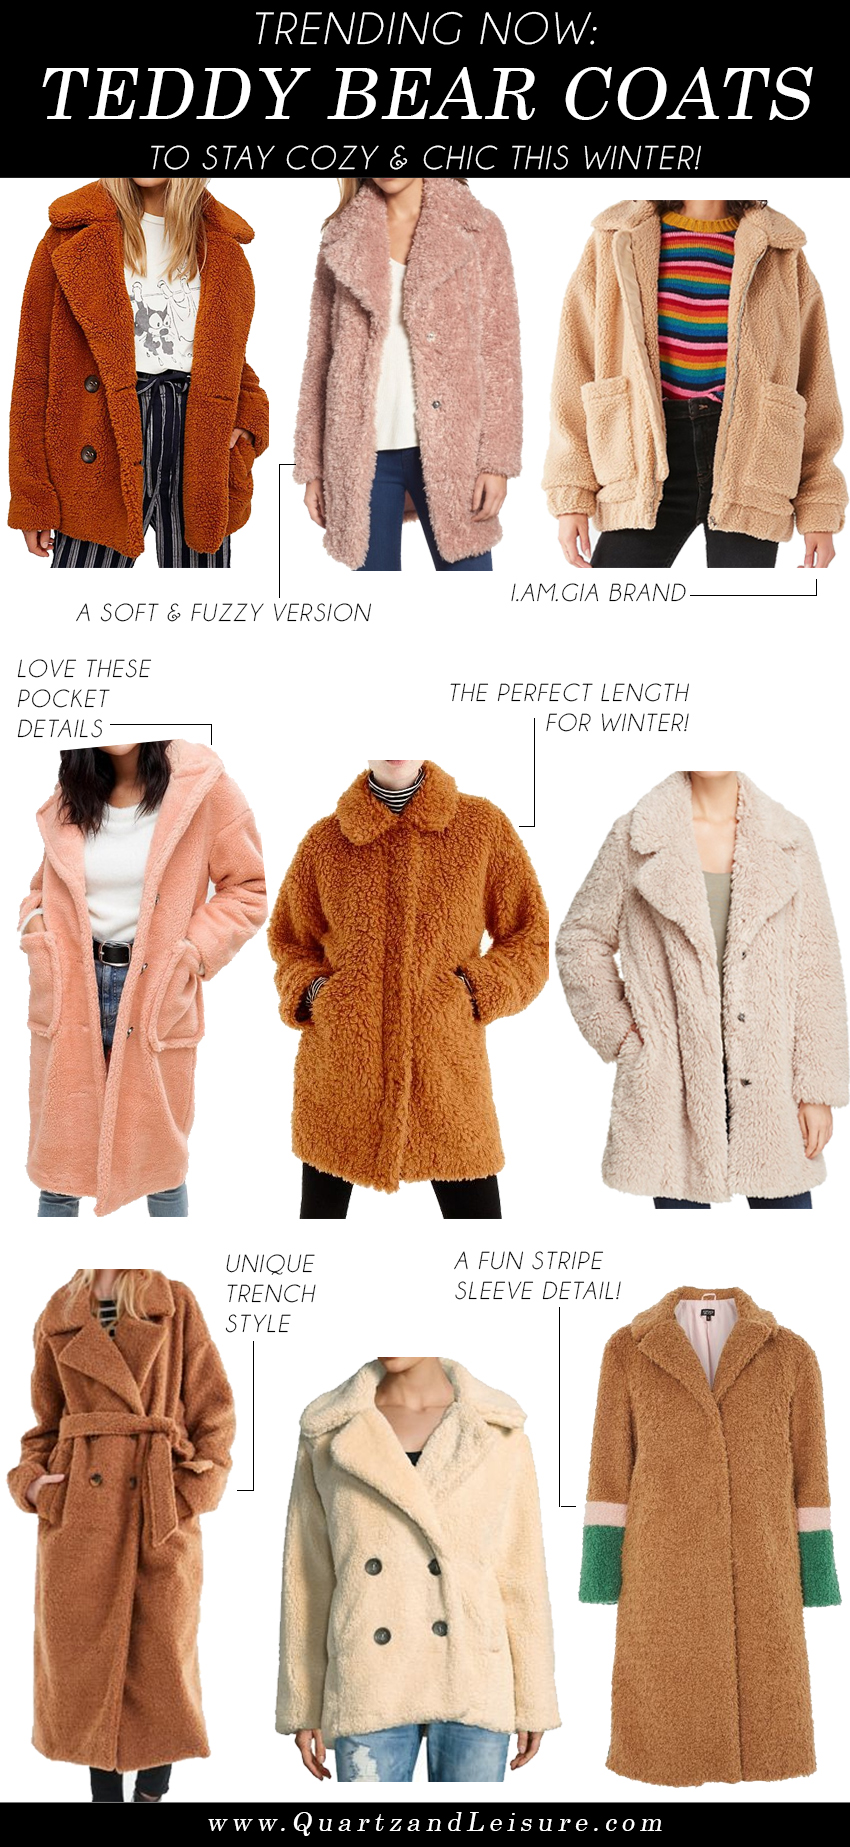 Teddy Bear Coats, Teddy Coat, Teddy Bear Jacket Urban Outfitters, Free People